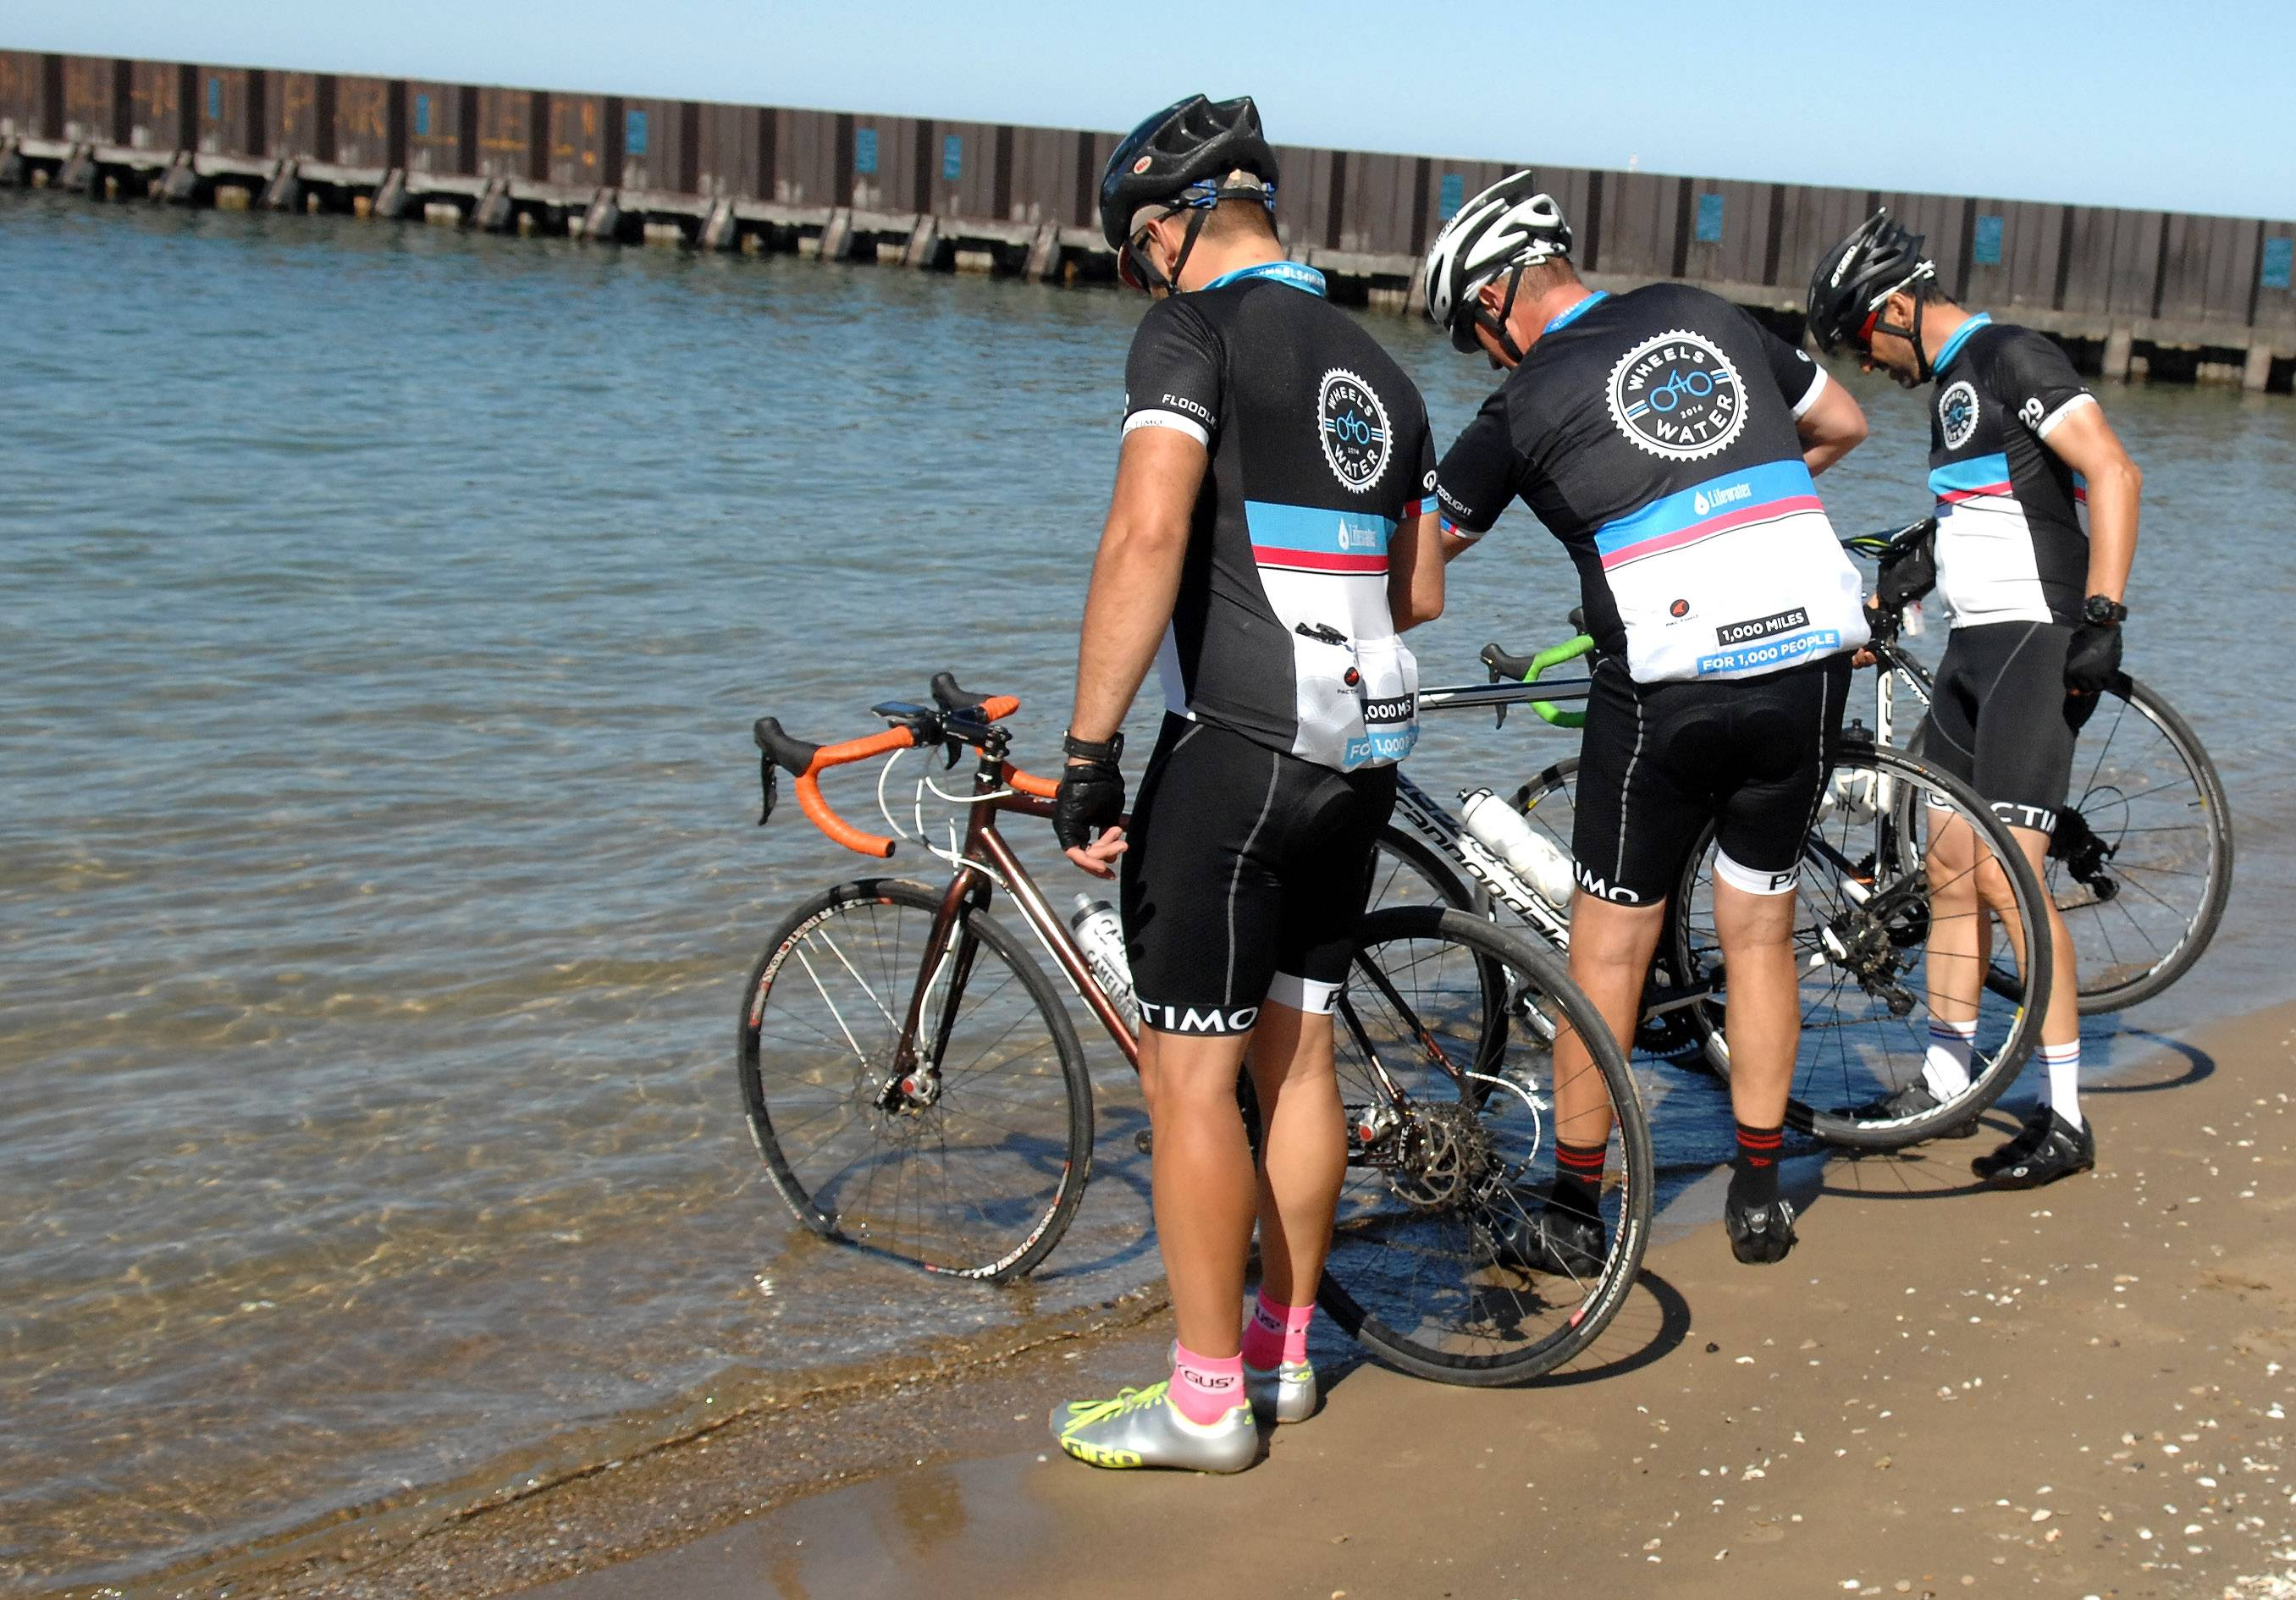 Justin Ahrens, left, Ryan Connary and Brian MacDonald dip their front tires in Lake Michigan as a ceremonial ending to their 1,207-mile ride earlier this month. They started their trip by dipping their rear tires in Boston Harbor 15 days earlier.